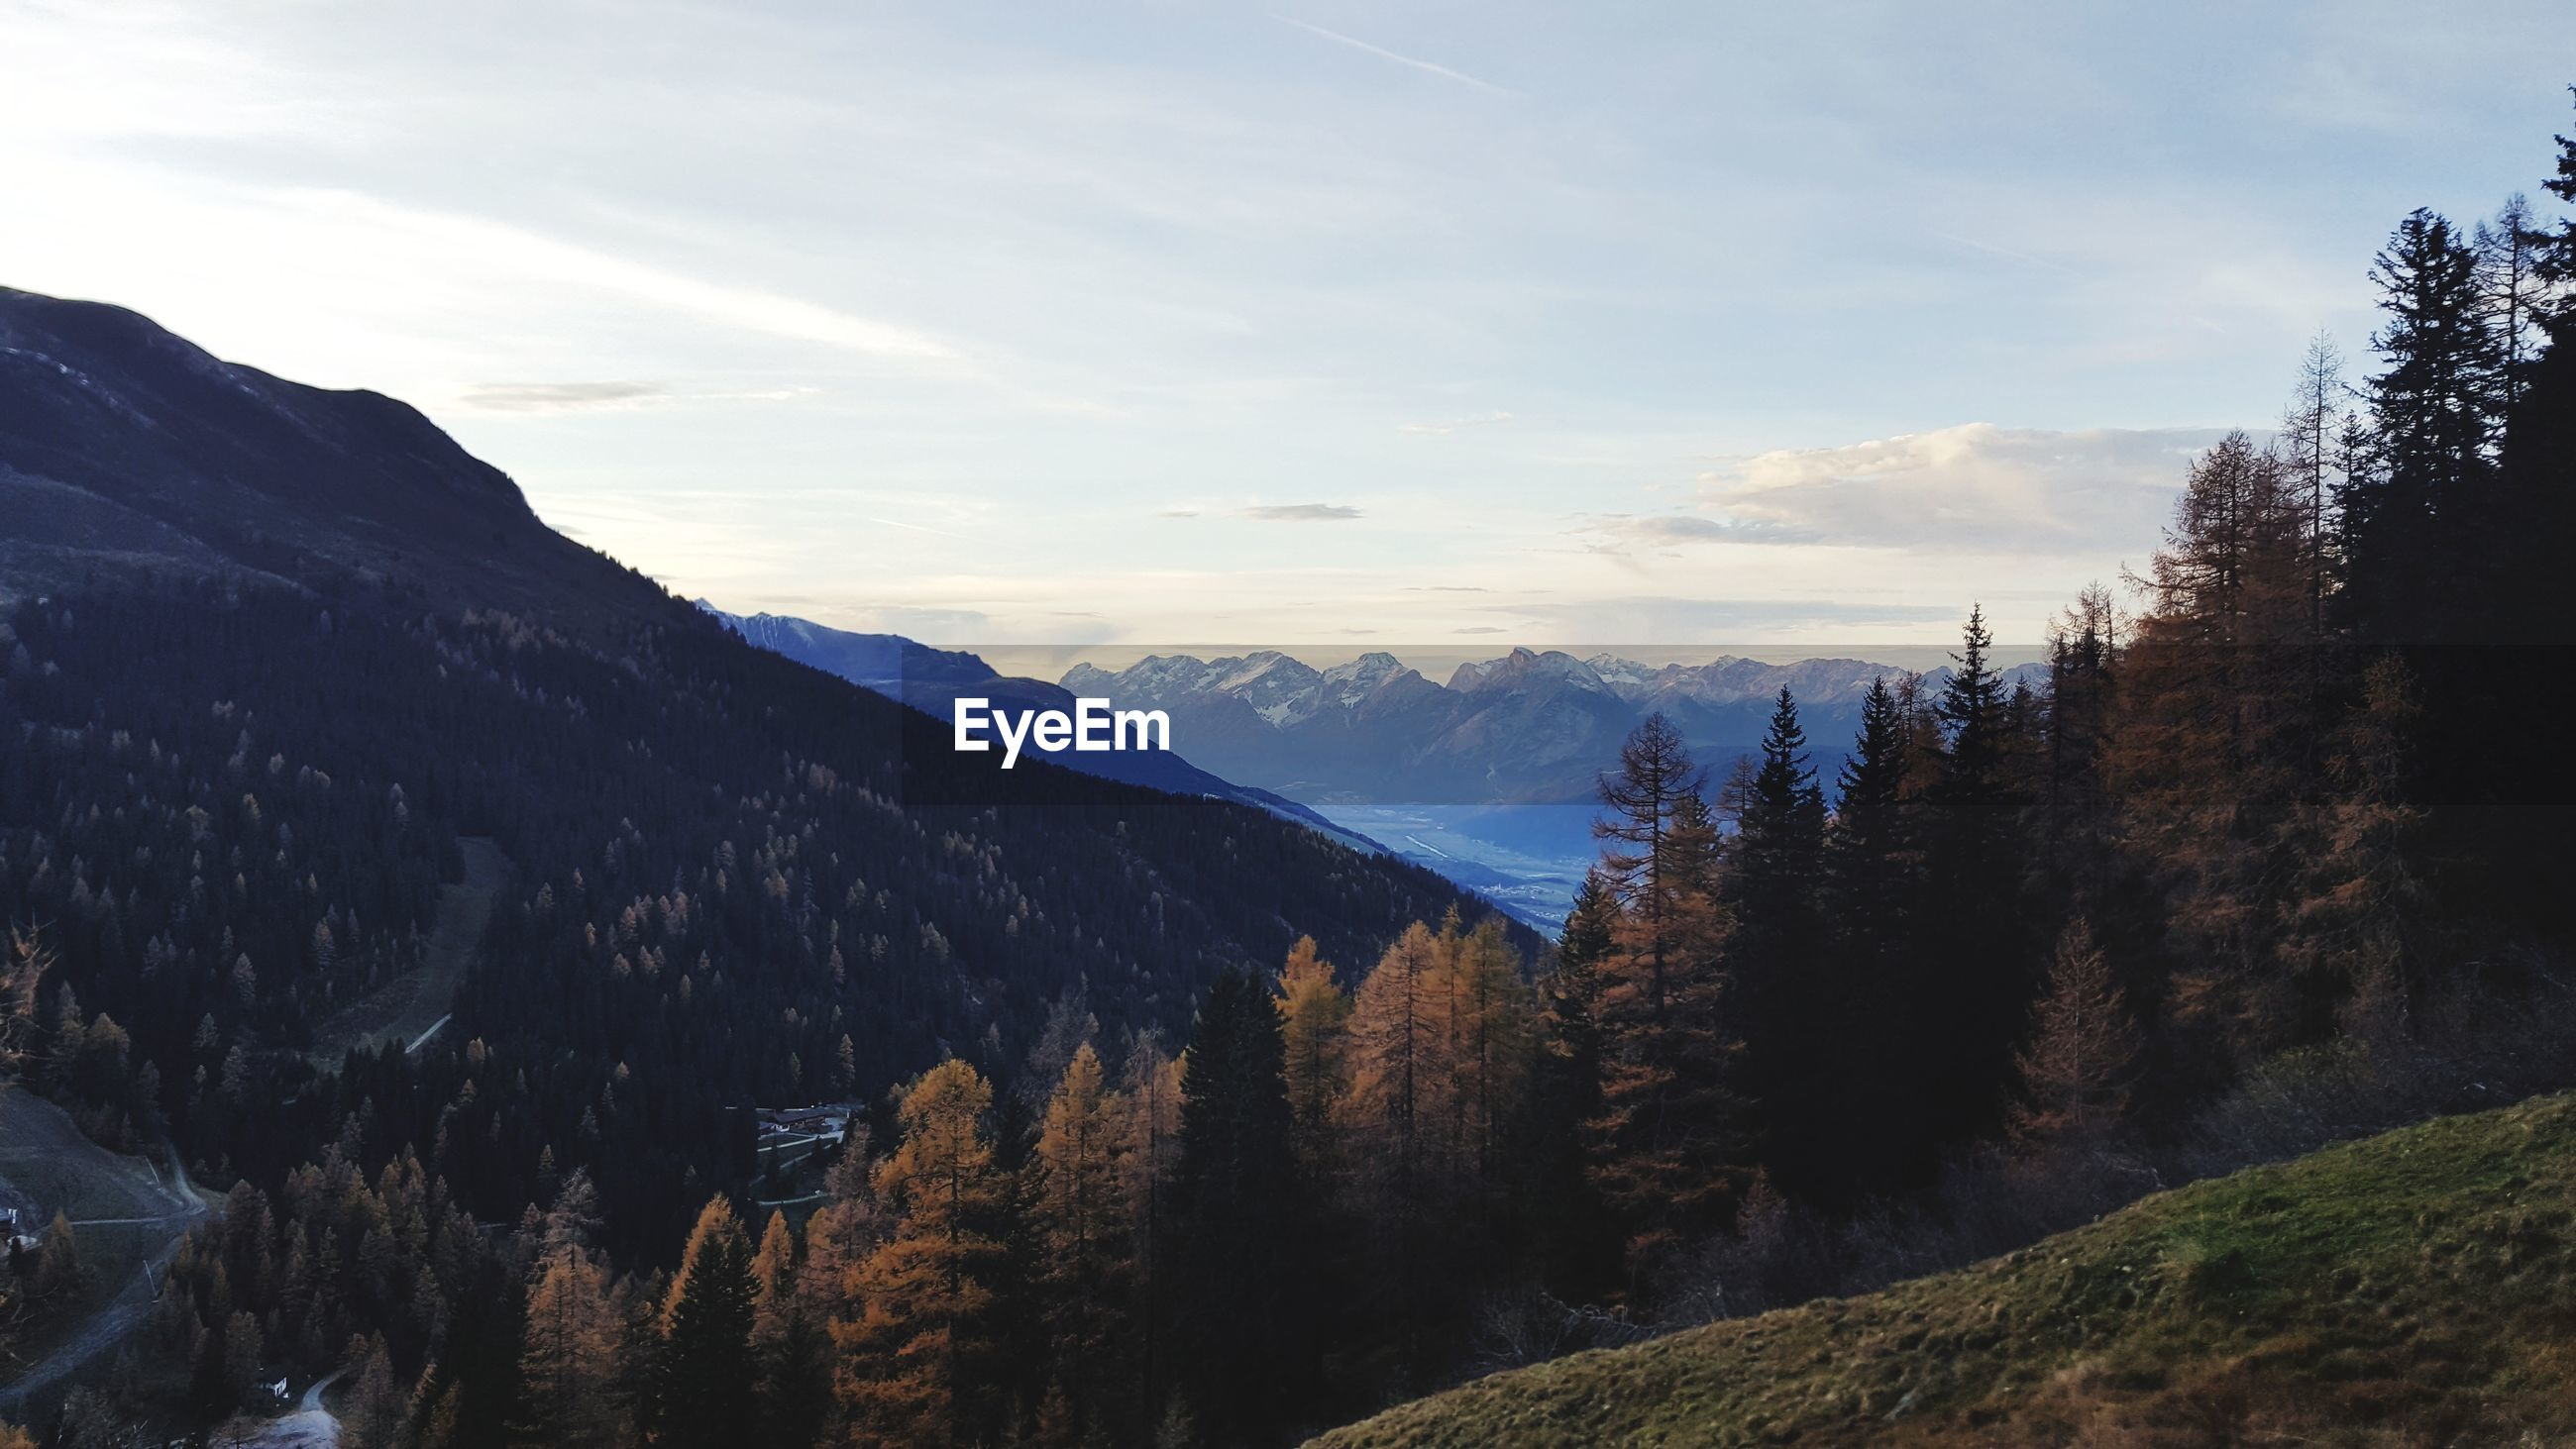 SCENIC VIEW OF MOUNTAINS AGAINST SKY AT FOREST